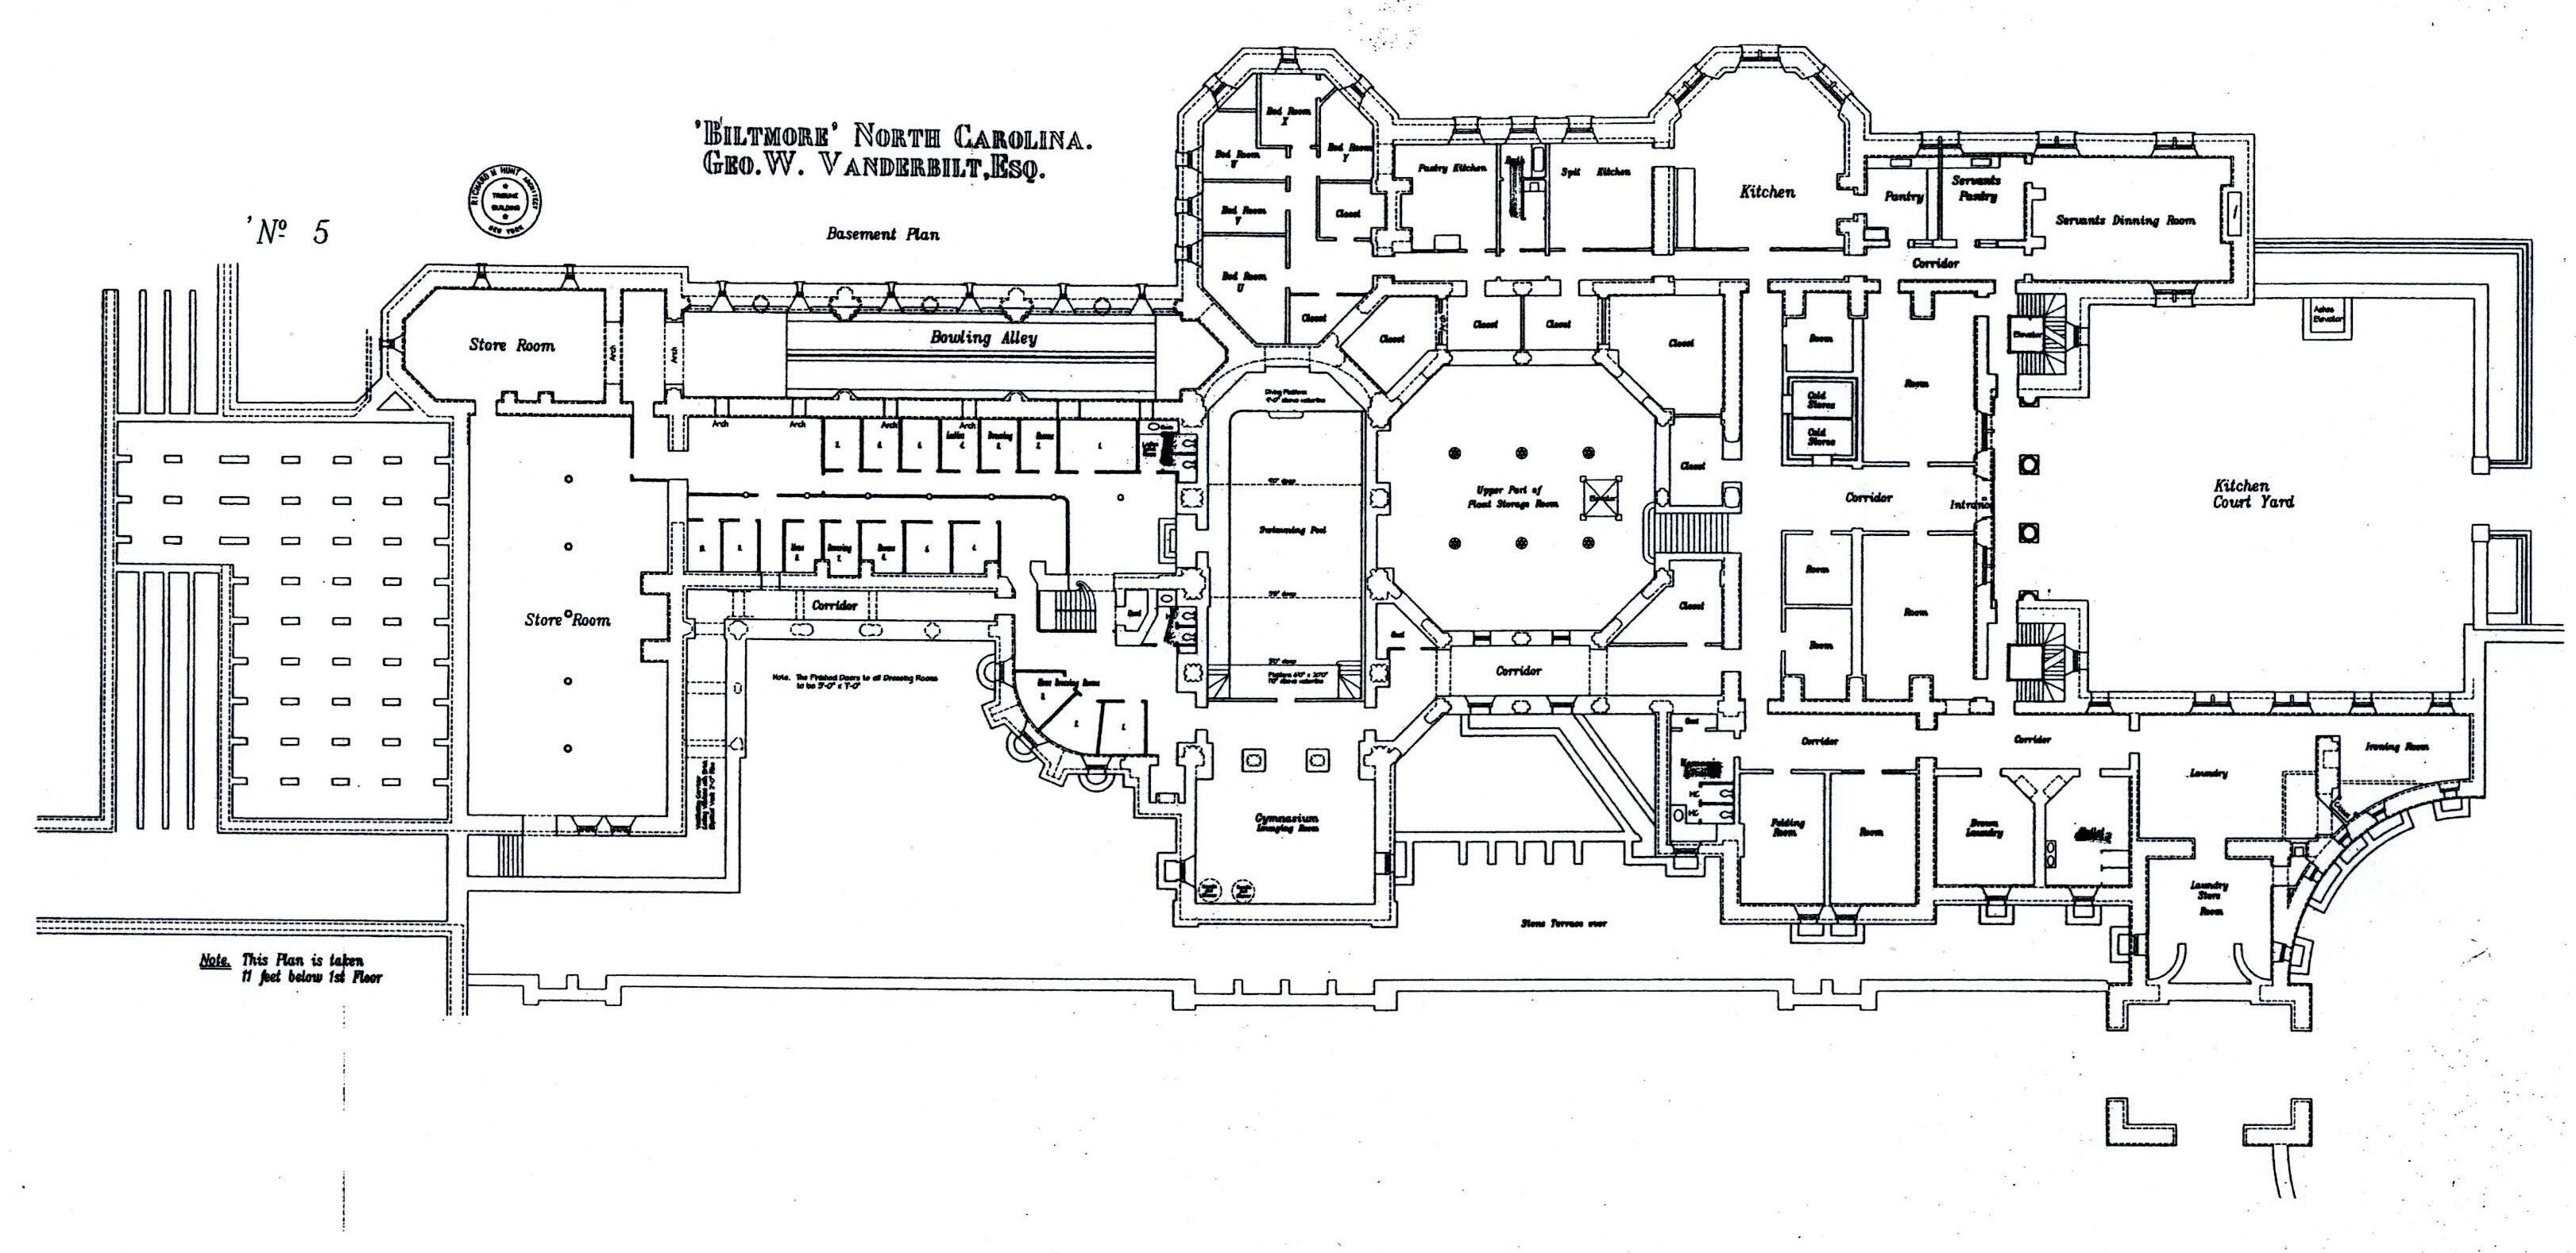 Biltmore house basement floorplan biltmore estate Bowling alley floor plans